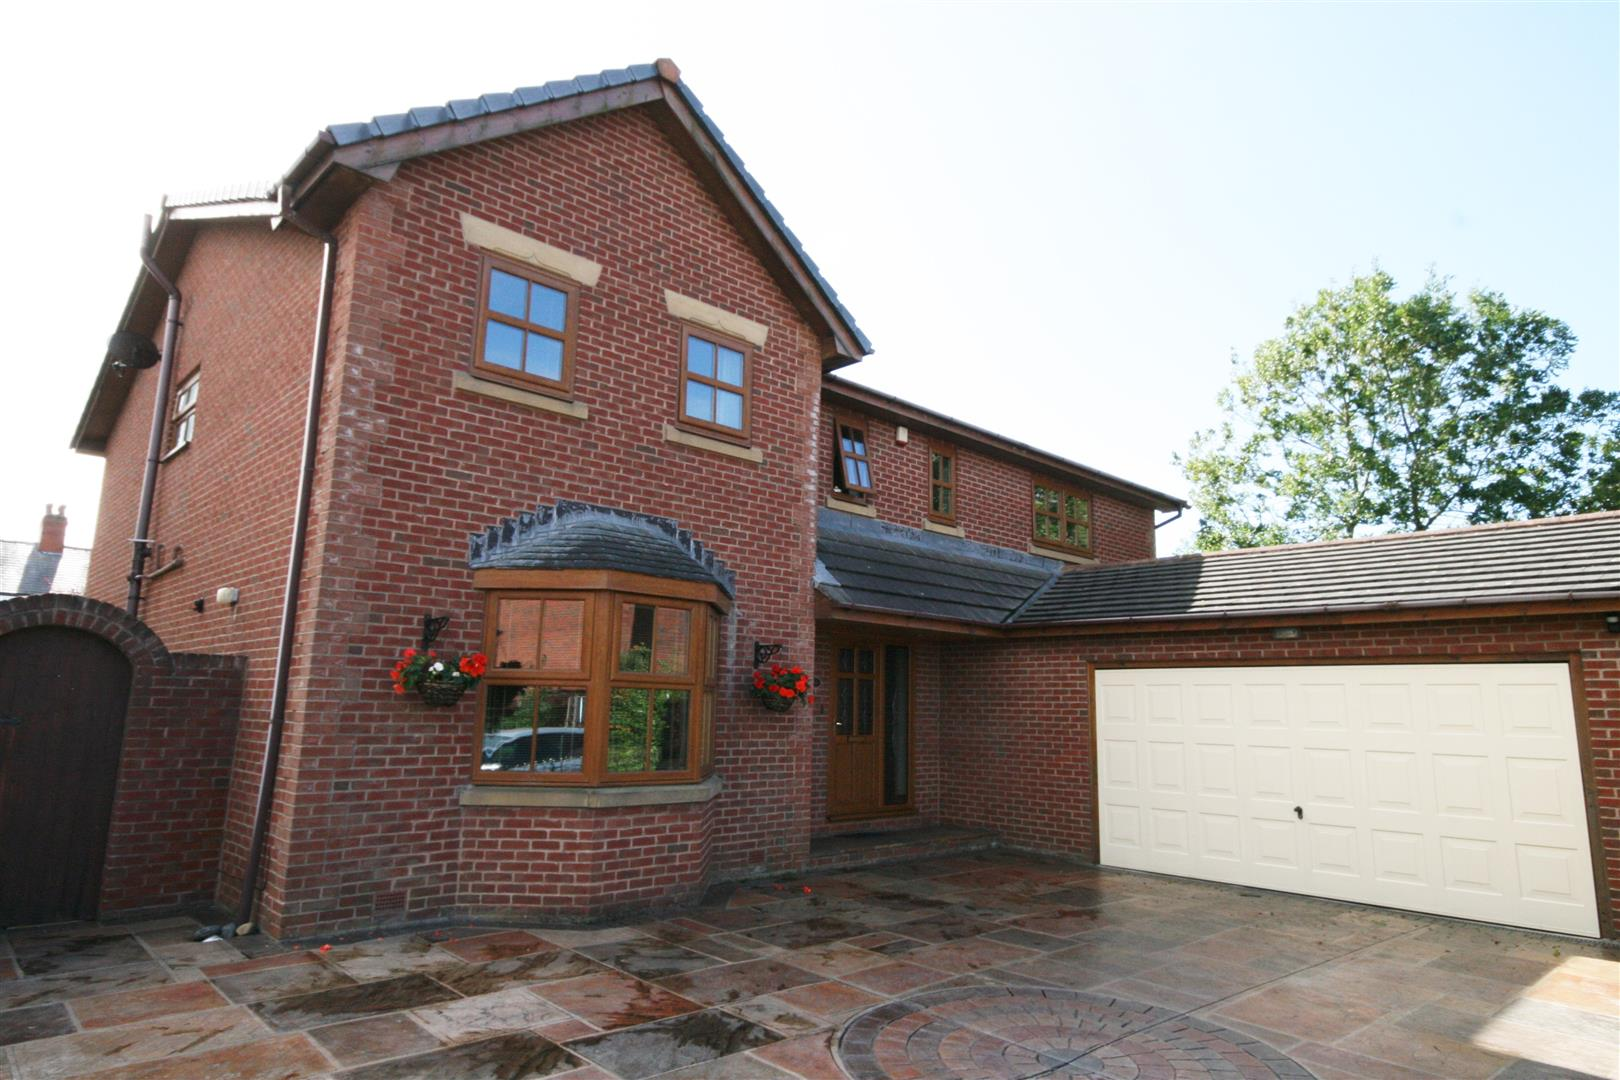 4 Bedrooms Detached House for sale in Mathews Court, Marton, Blackpool